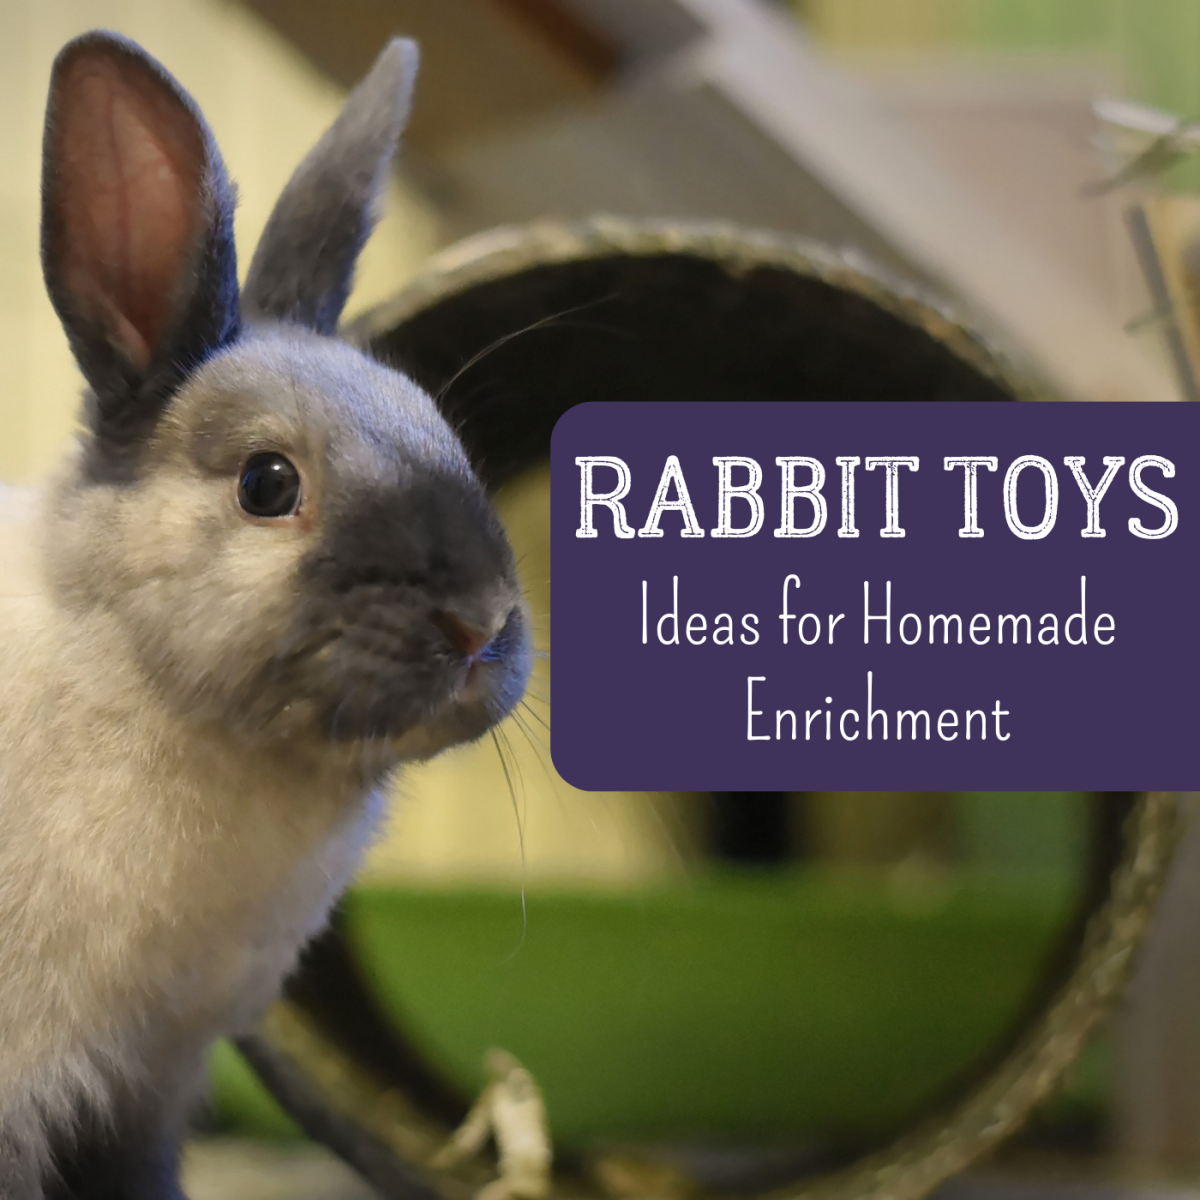 Get lots of ideas for fun, safe toys that you can make for your rabbit, like tunnels!